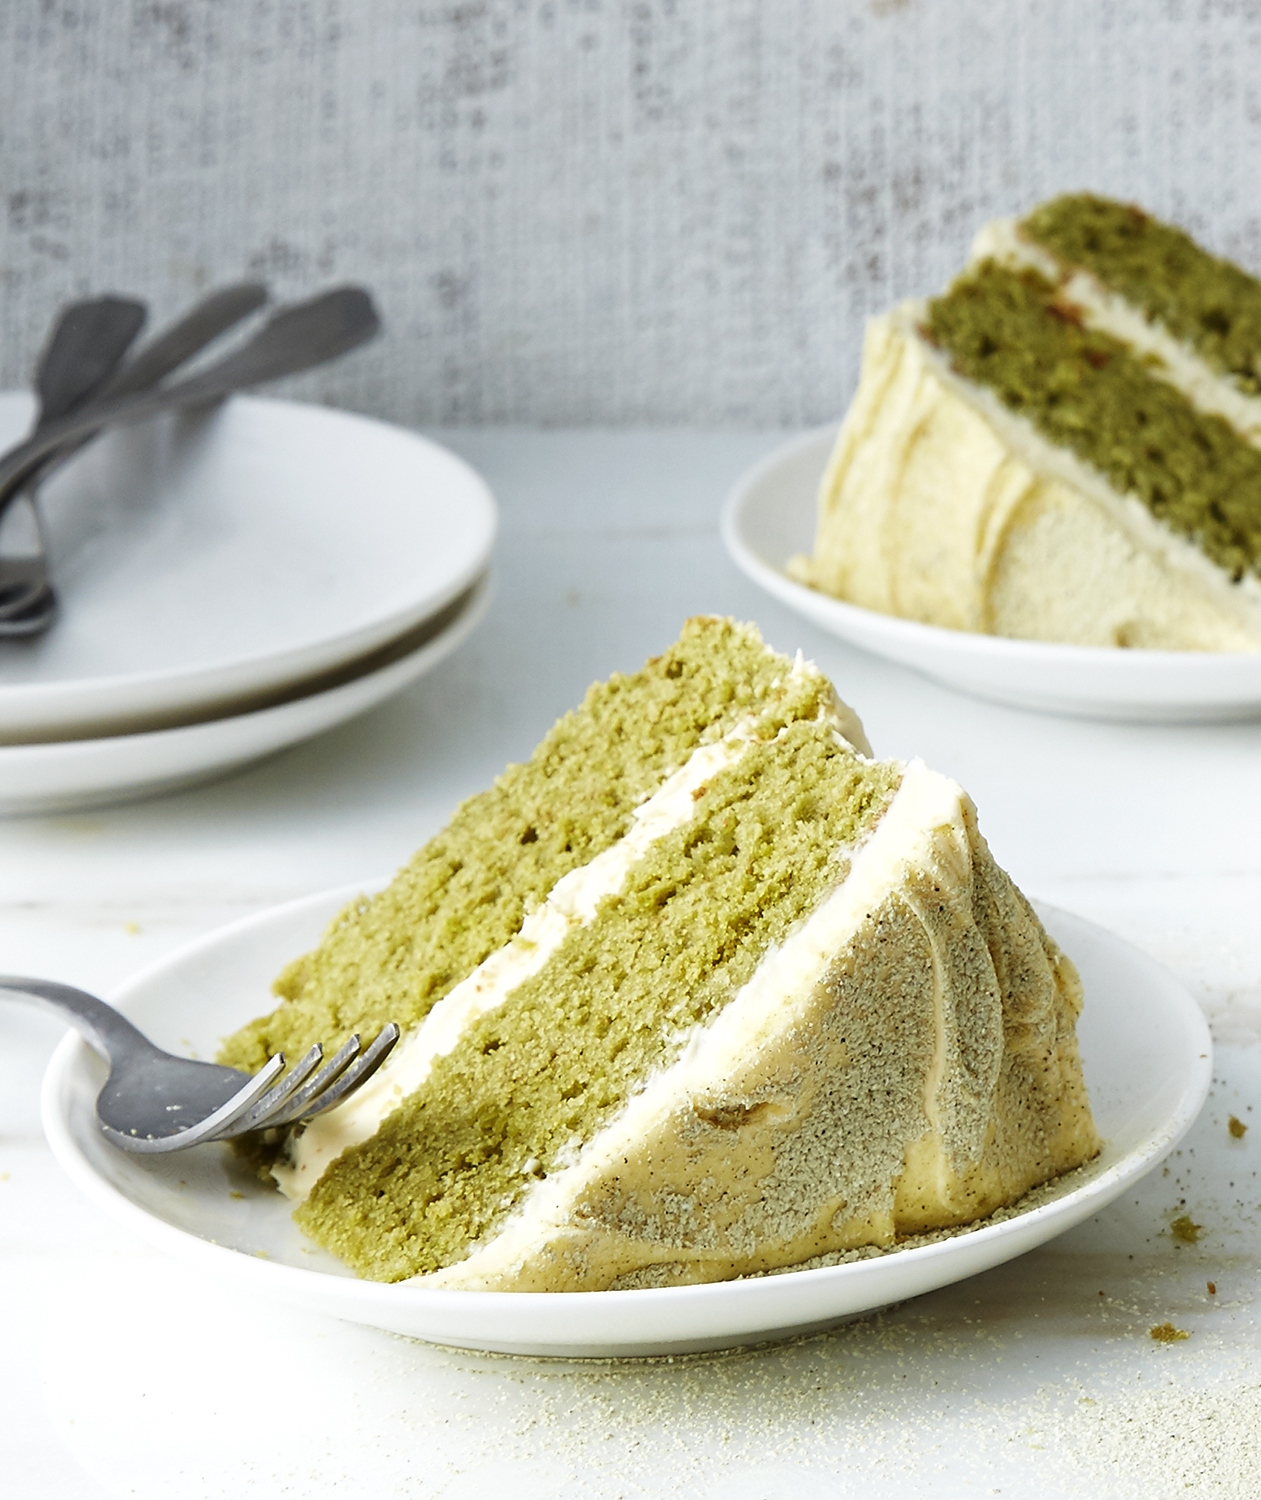 Matcha Layercake with Vanilla Buttercream Frosting